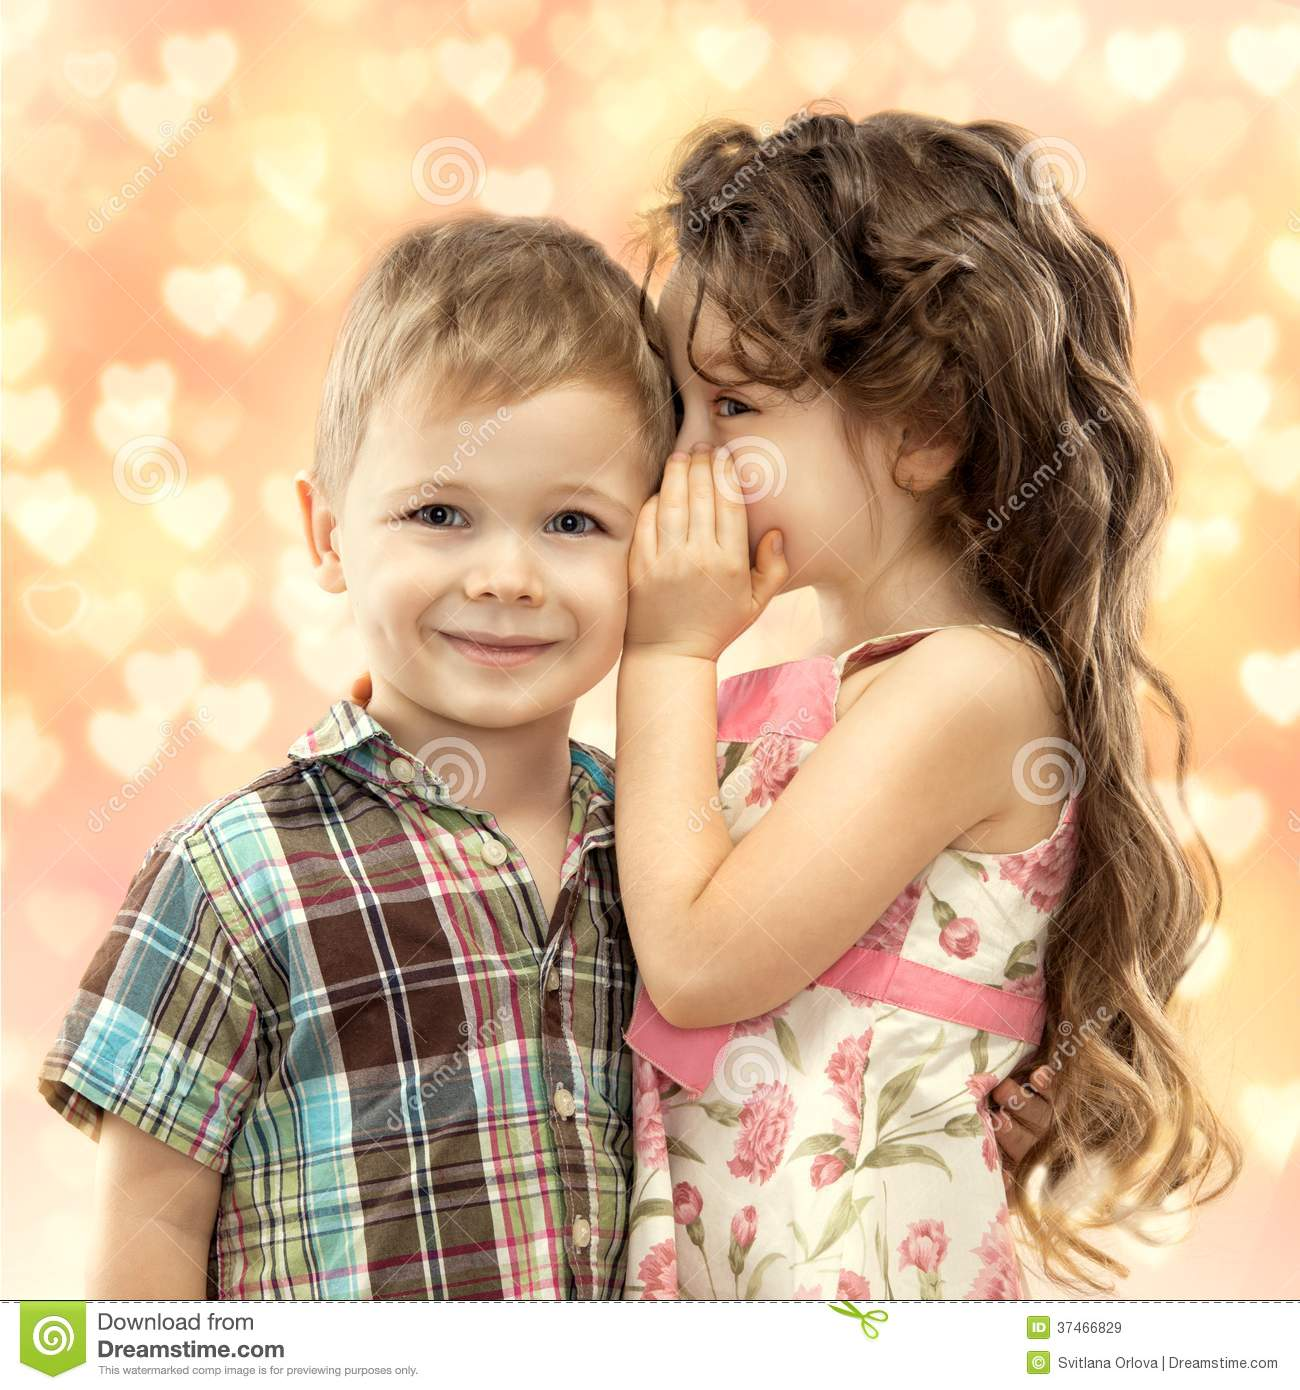 Cute Baby Girl And Boy In Love | www.pixshark.com - Images ...